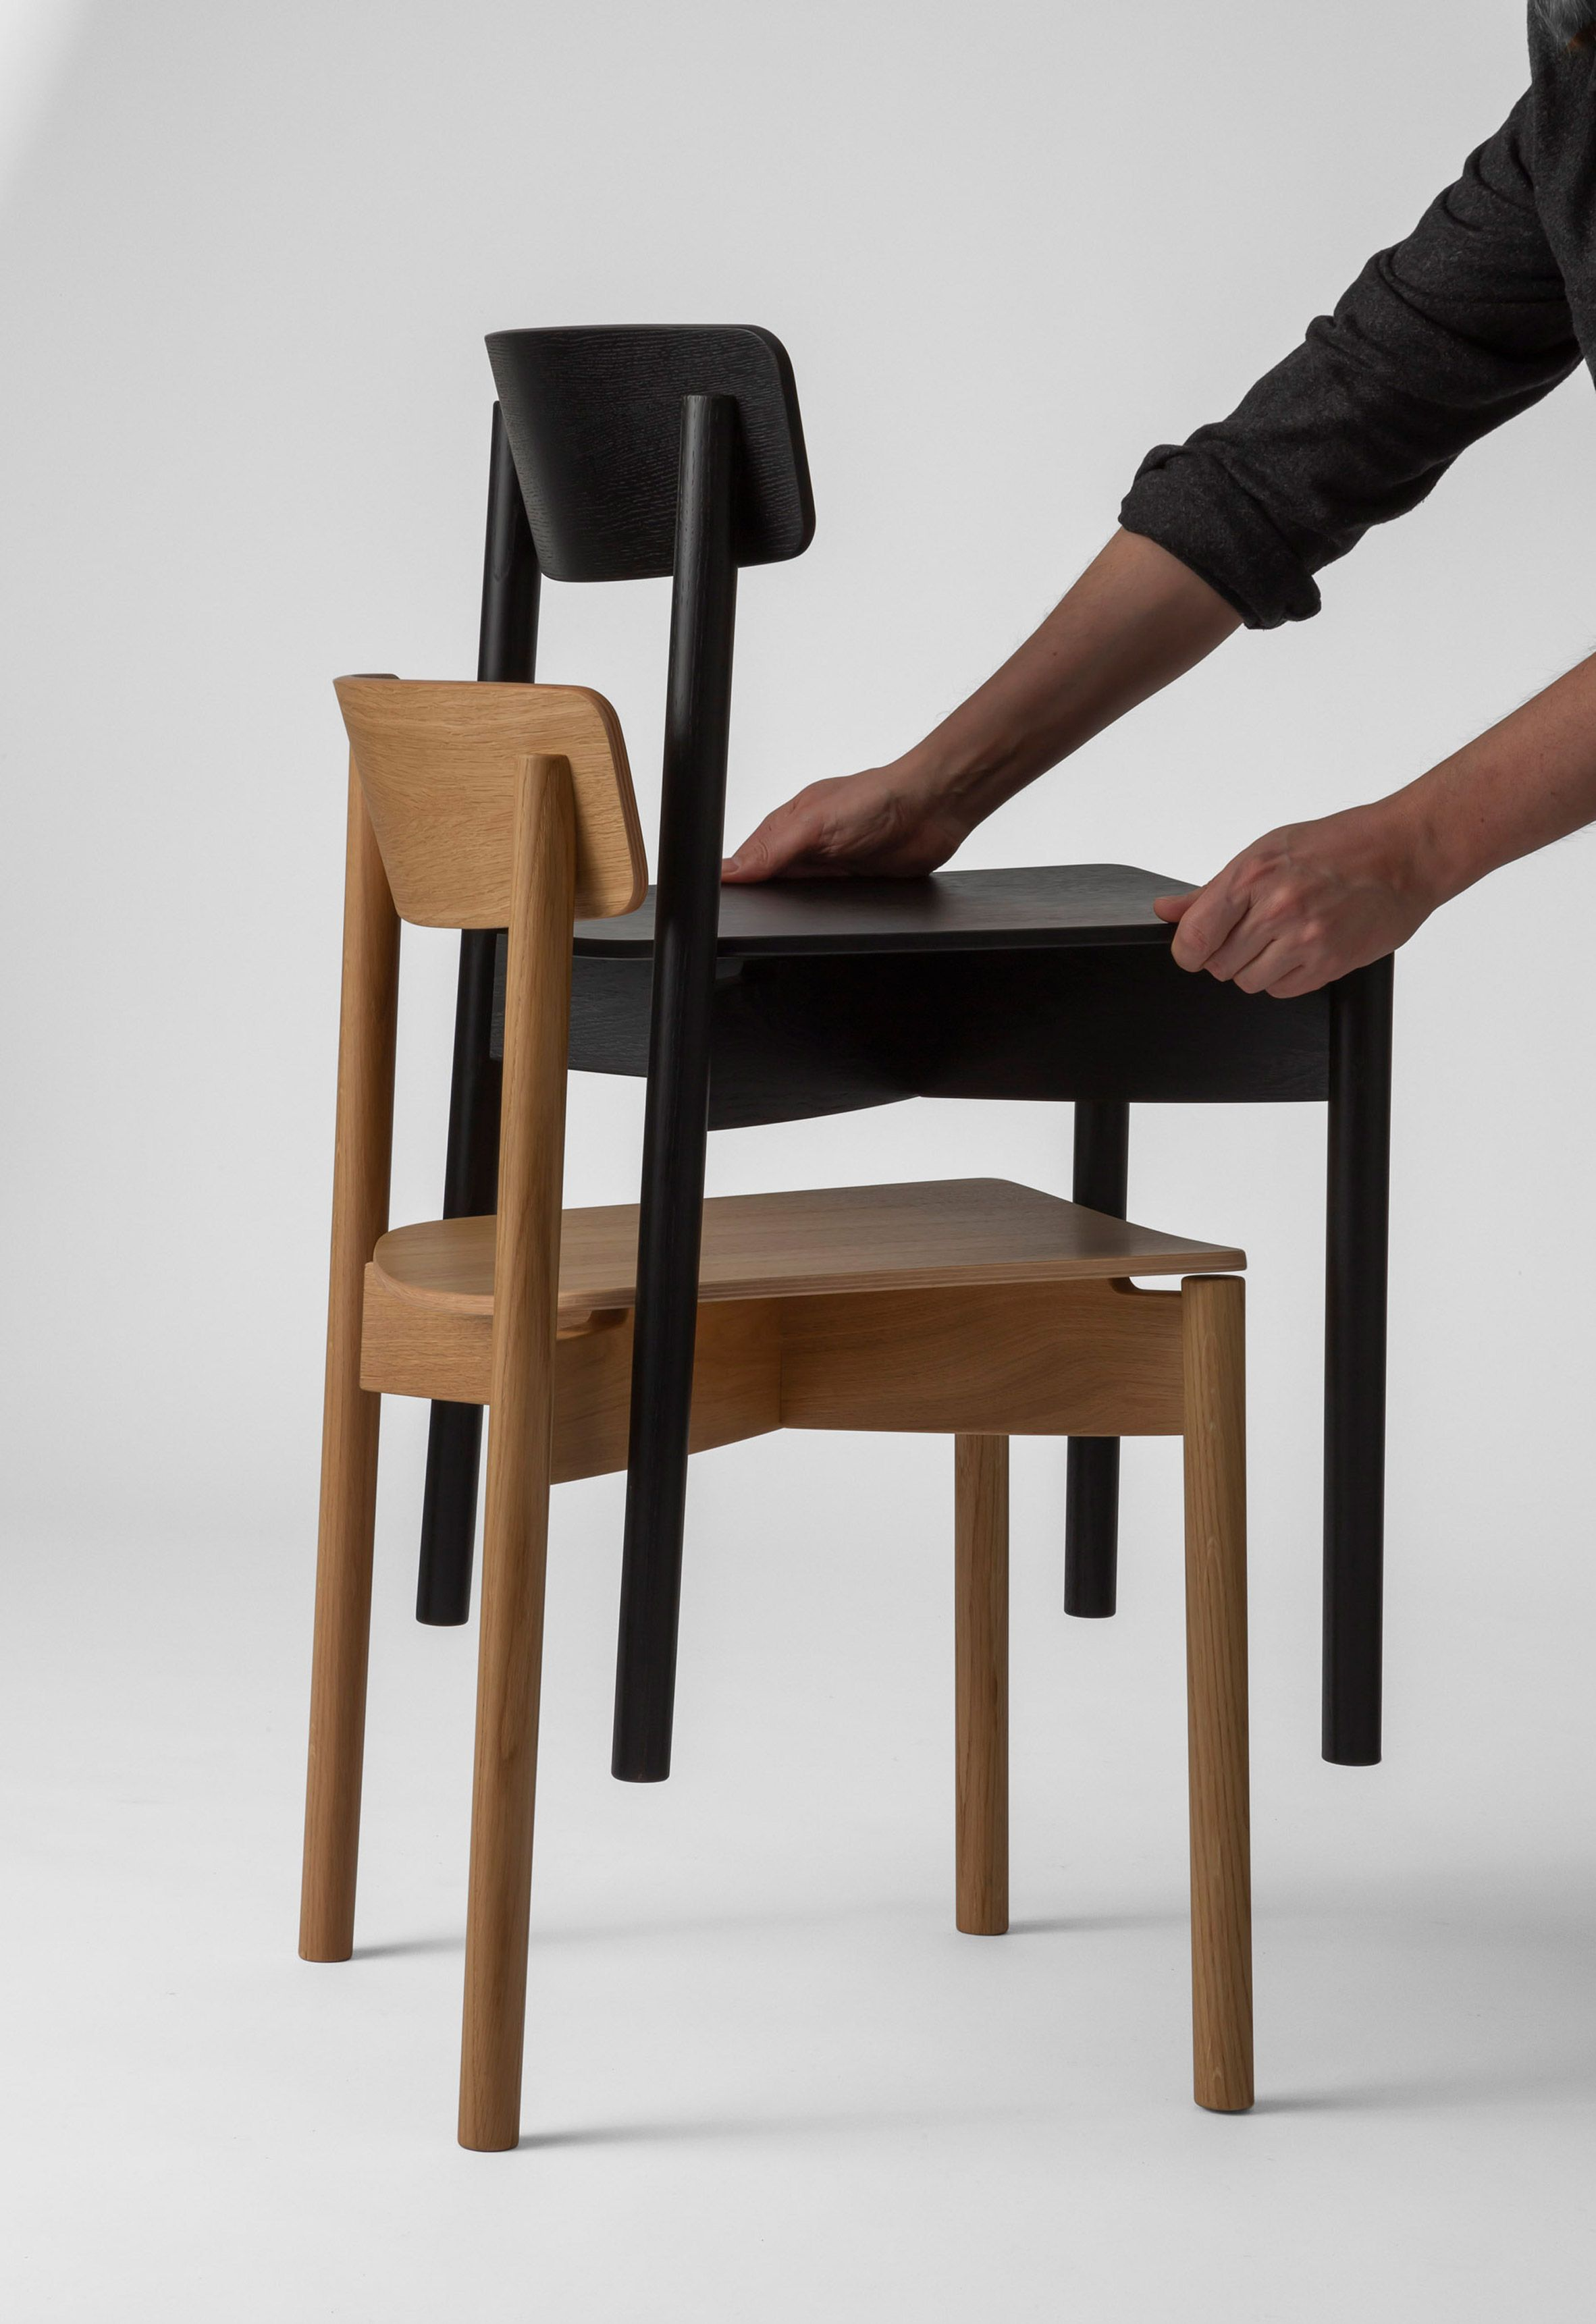 Pearsonlloyd Designs Flat Pack Chair For Takt Called Cross Flat Pack Furniture Chair Design Wooden Chair